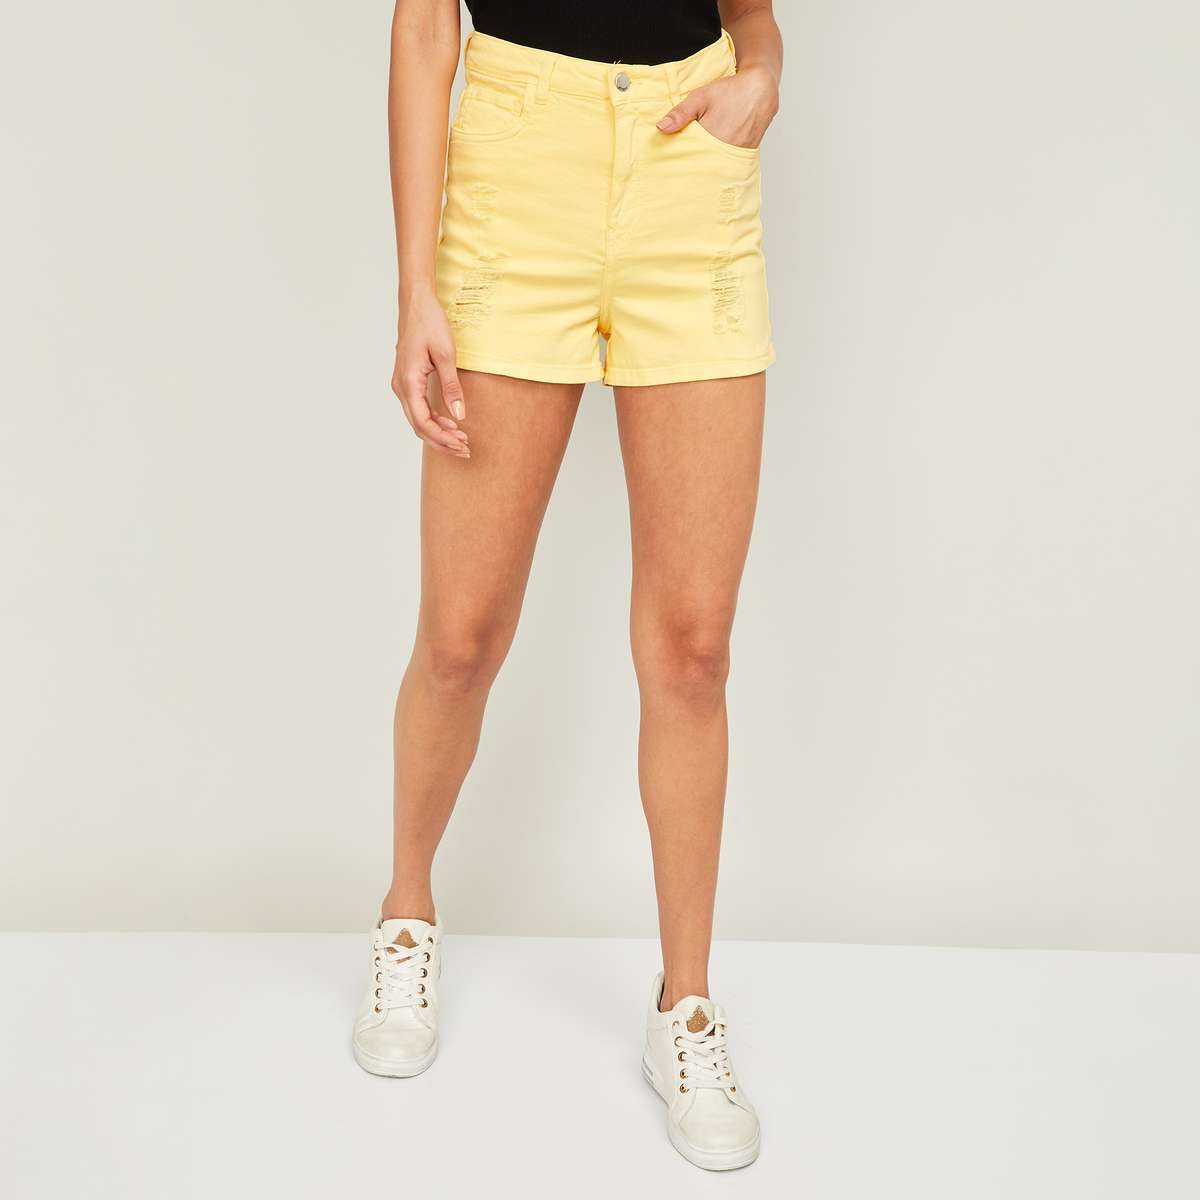 3.GINGER Women Solid Distressed Shorts